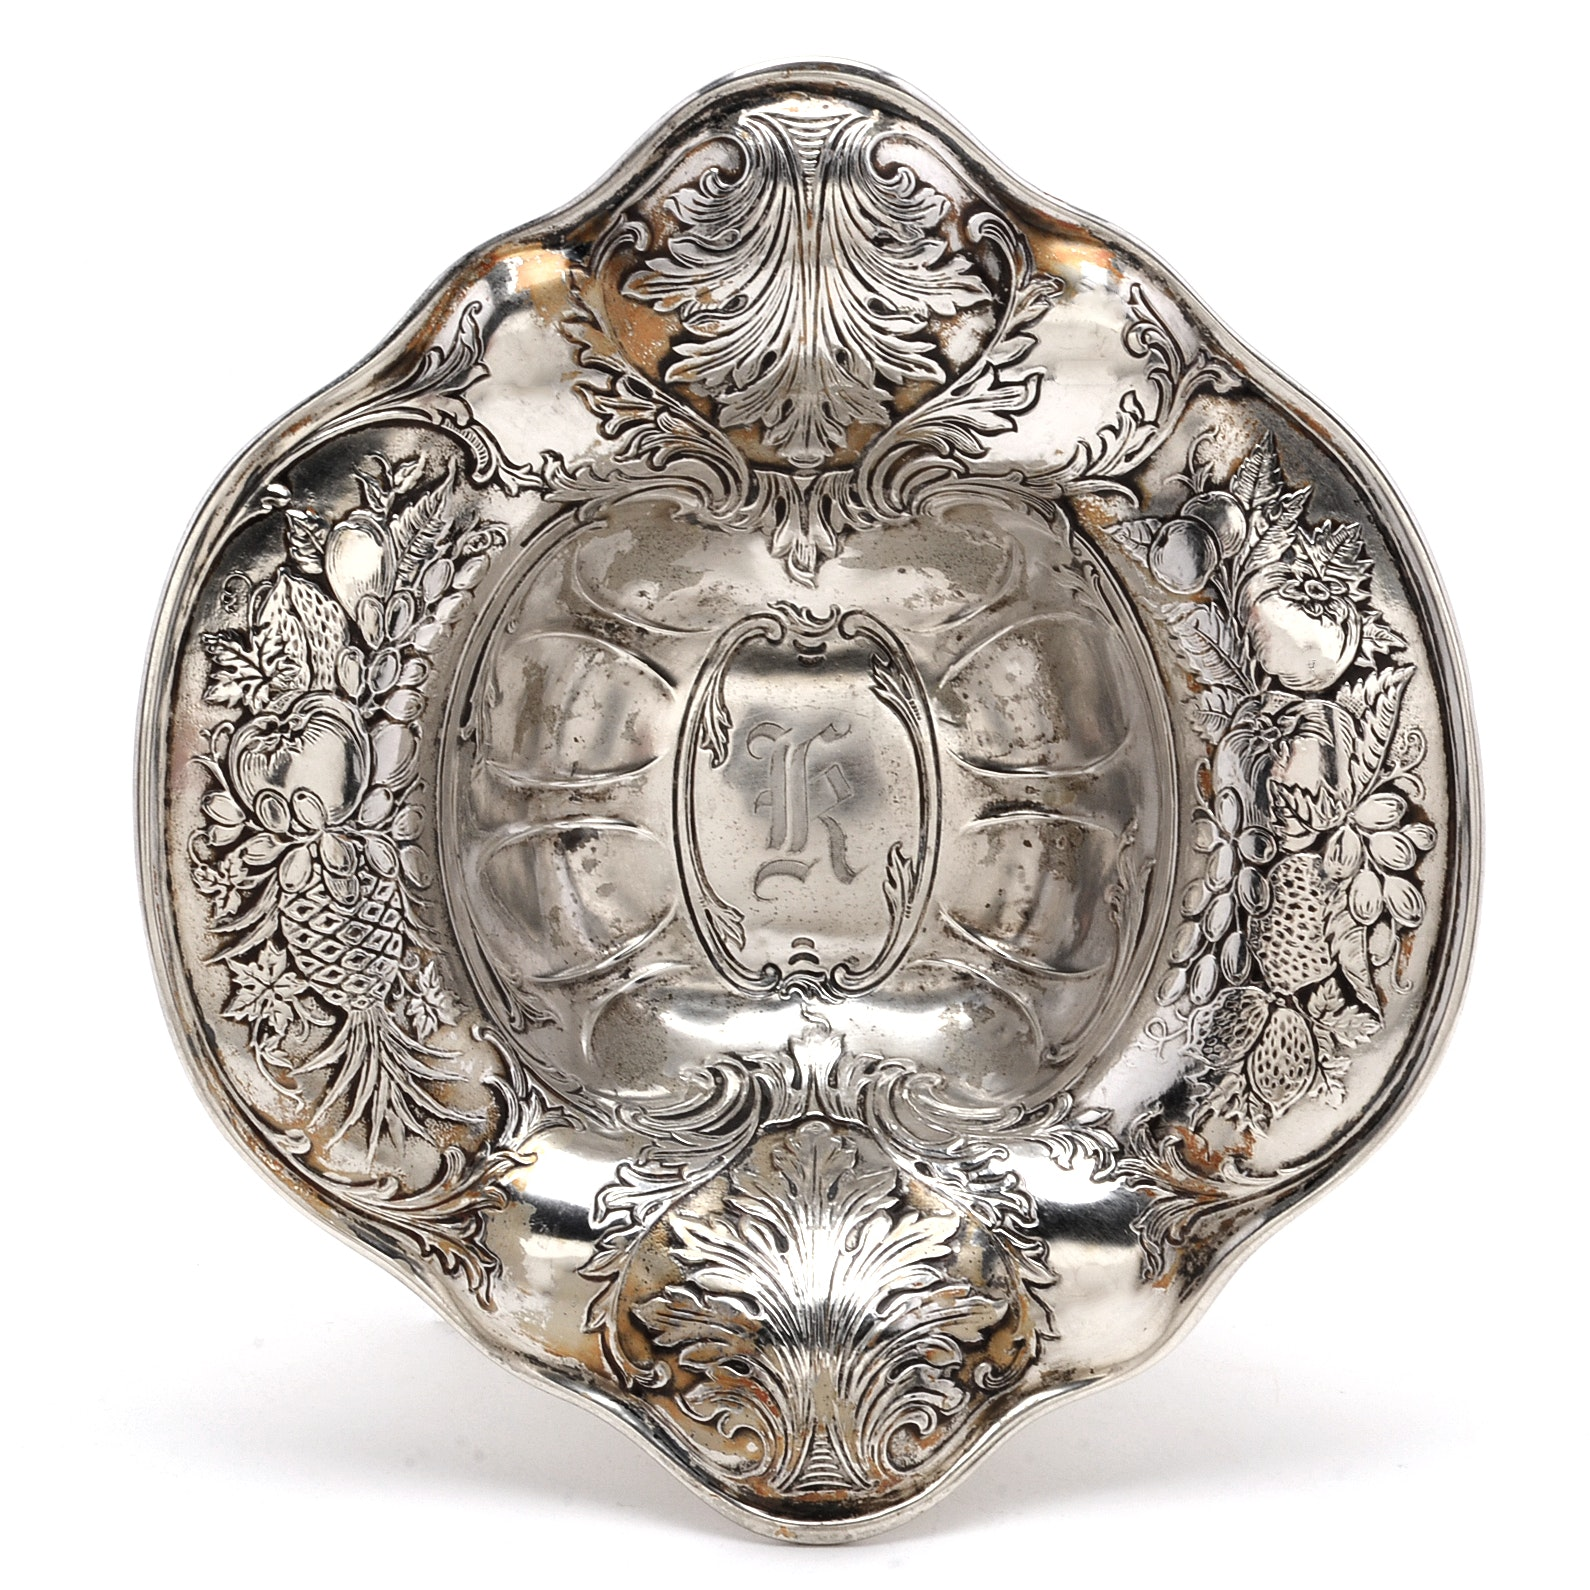 Antique Sterling Silver Nut Dish with Traces of Gold Wash